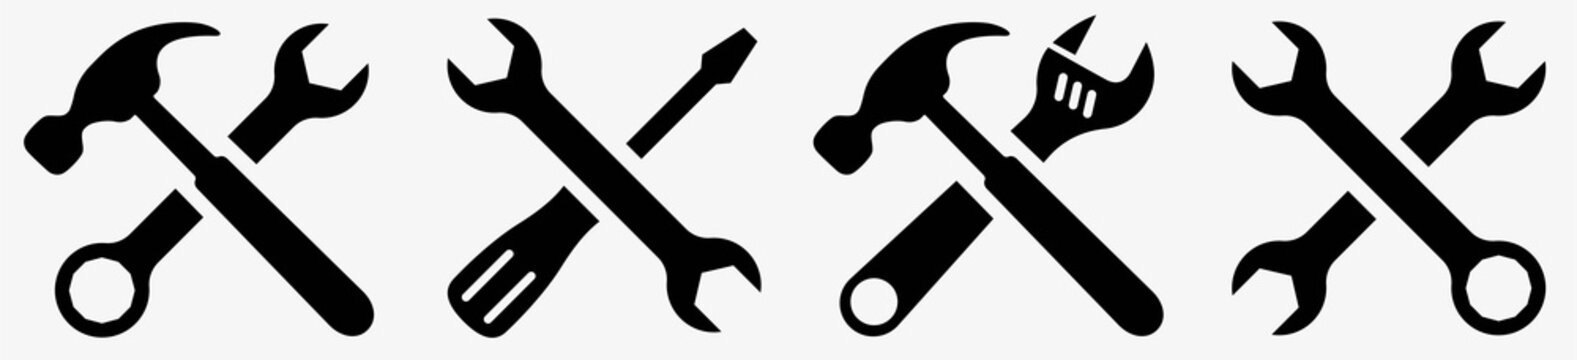 Tool icon set.Hammer turnscrew tools icon.Instrument collection. Vector illustration